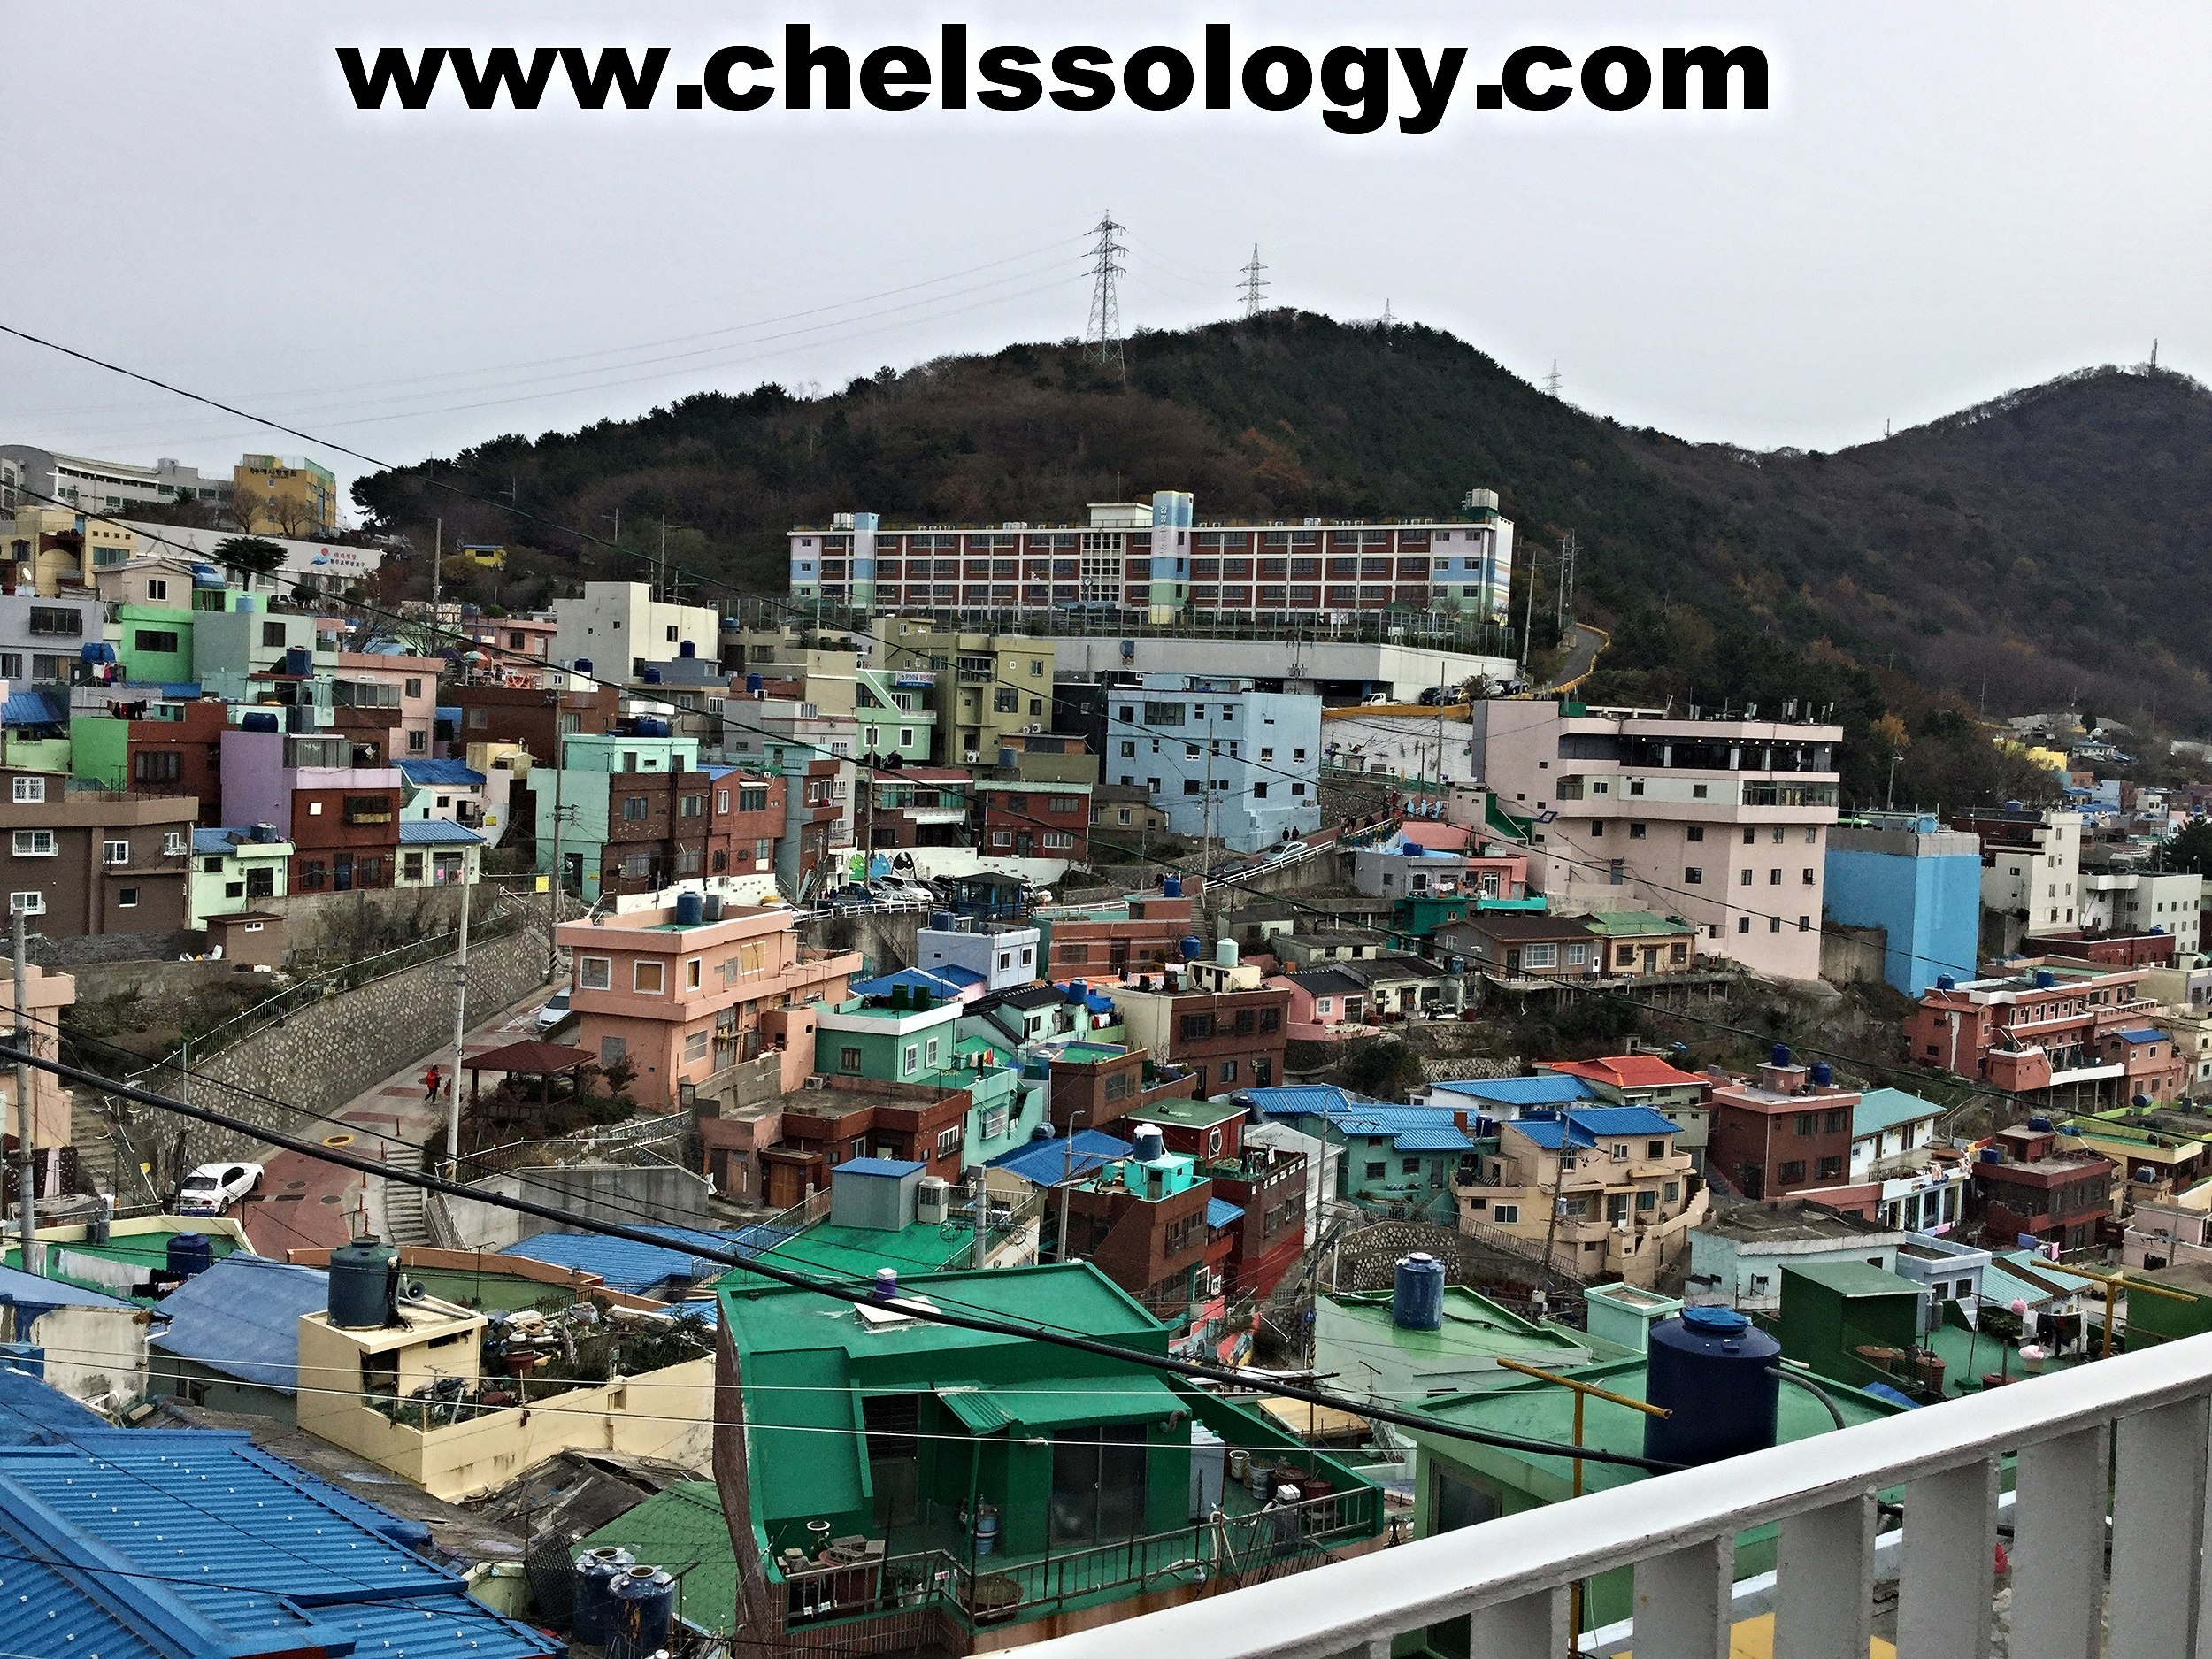 Enjoying breathtaking views at Gamcheon Village.